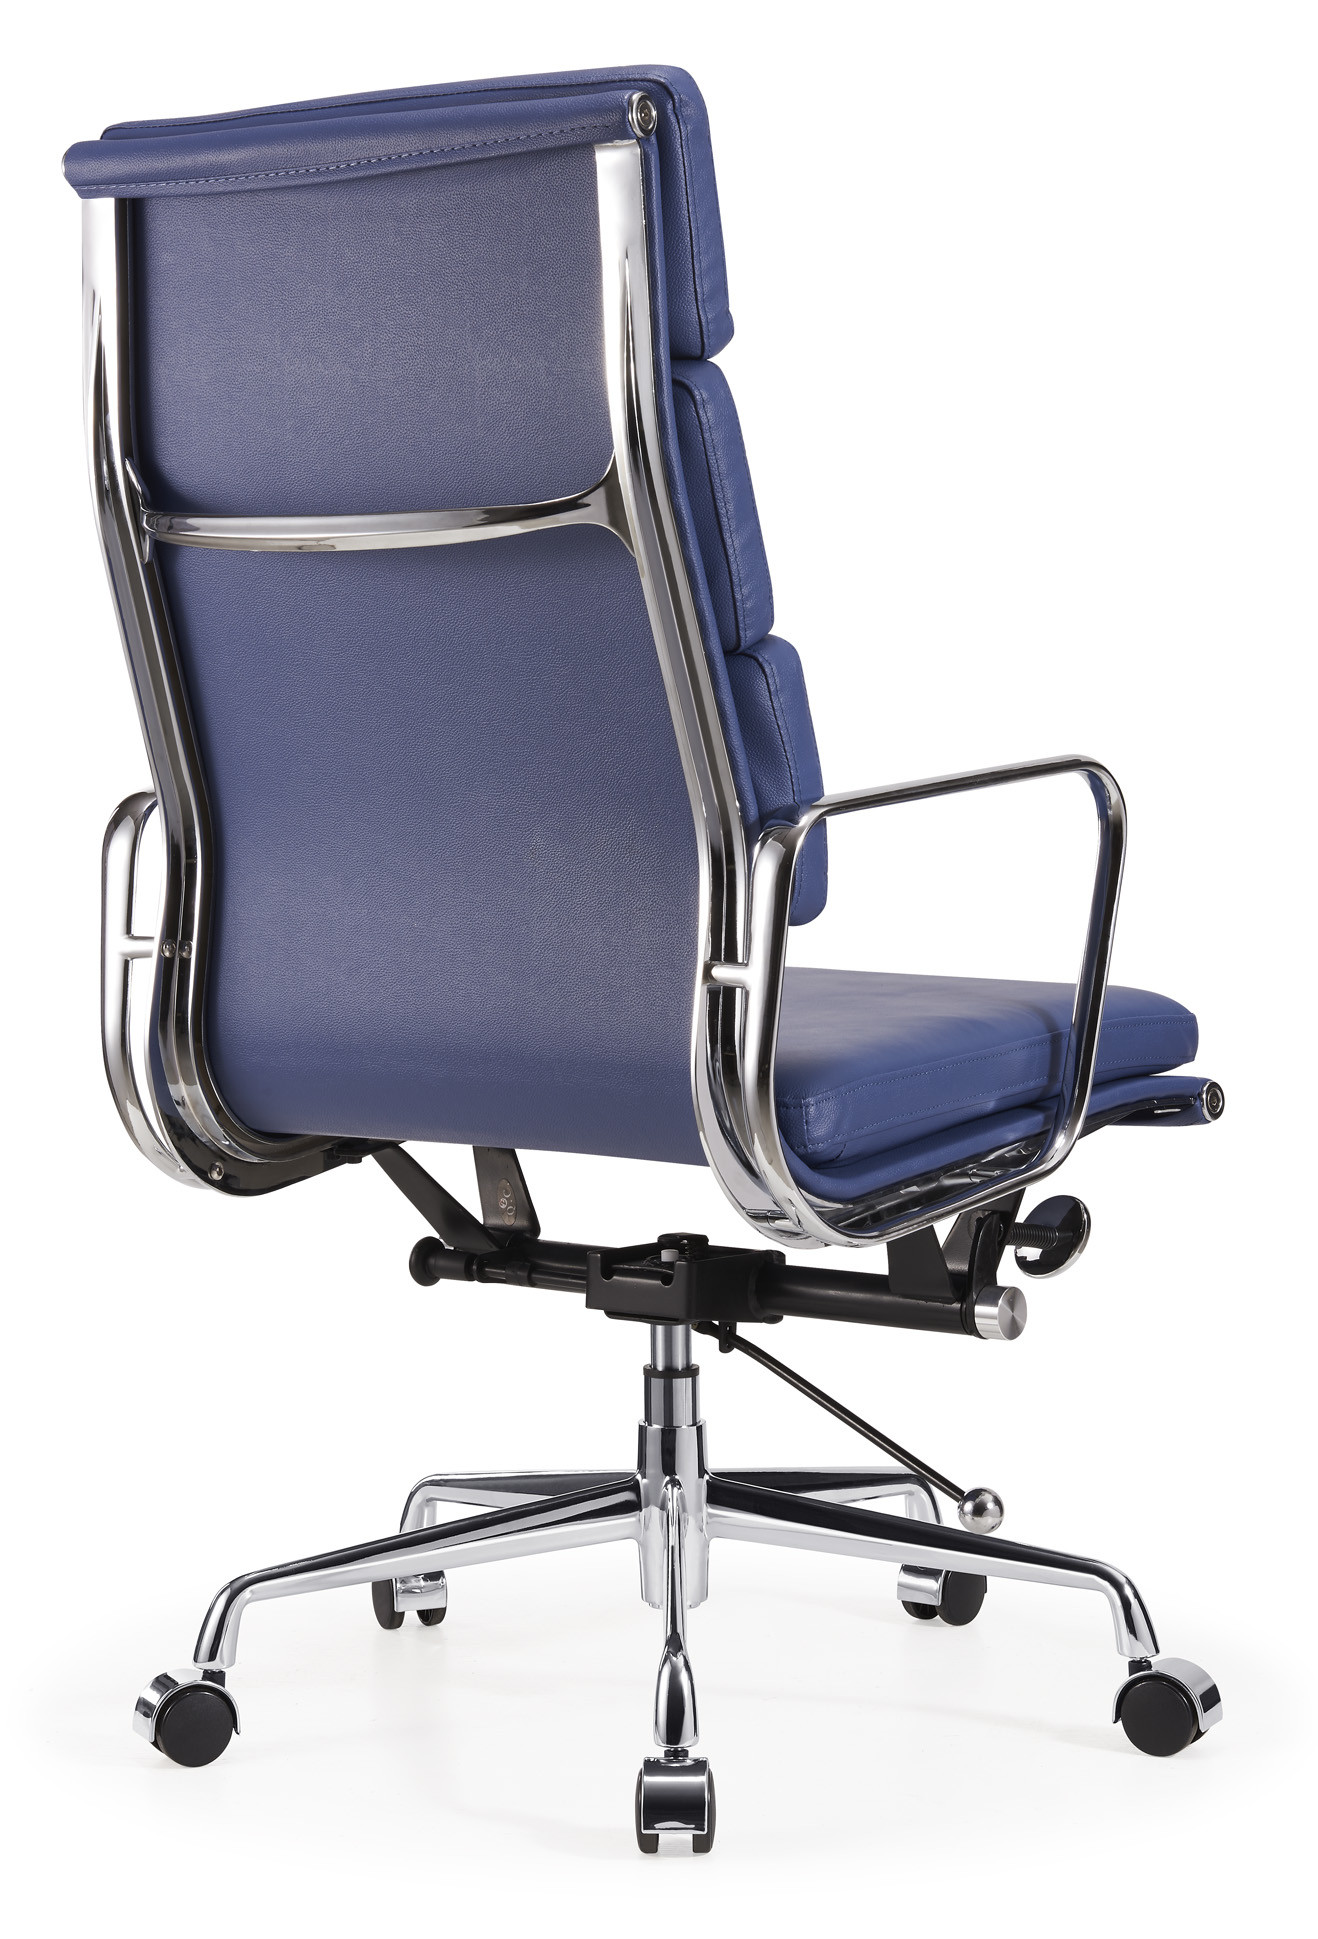 new eames premium replica high back soft pad management office chair ebay. Black Bedroom Furniture Sets. Home Design Ideas